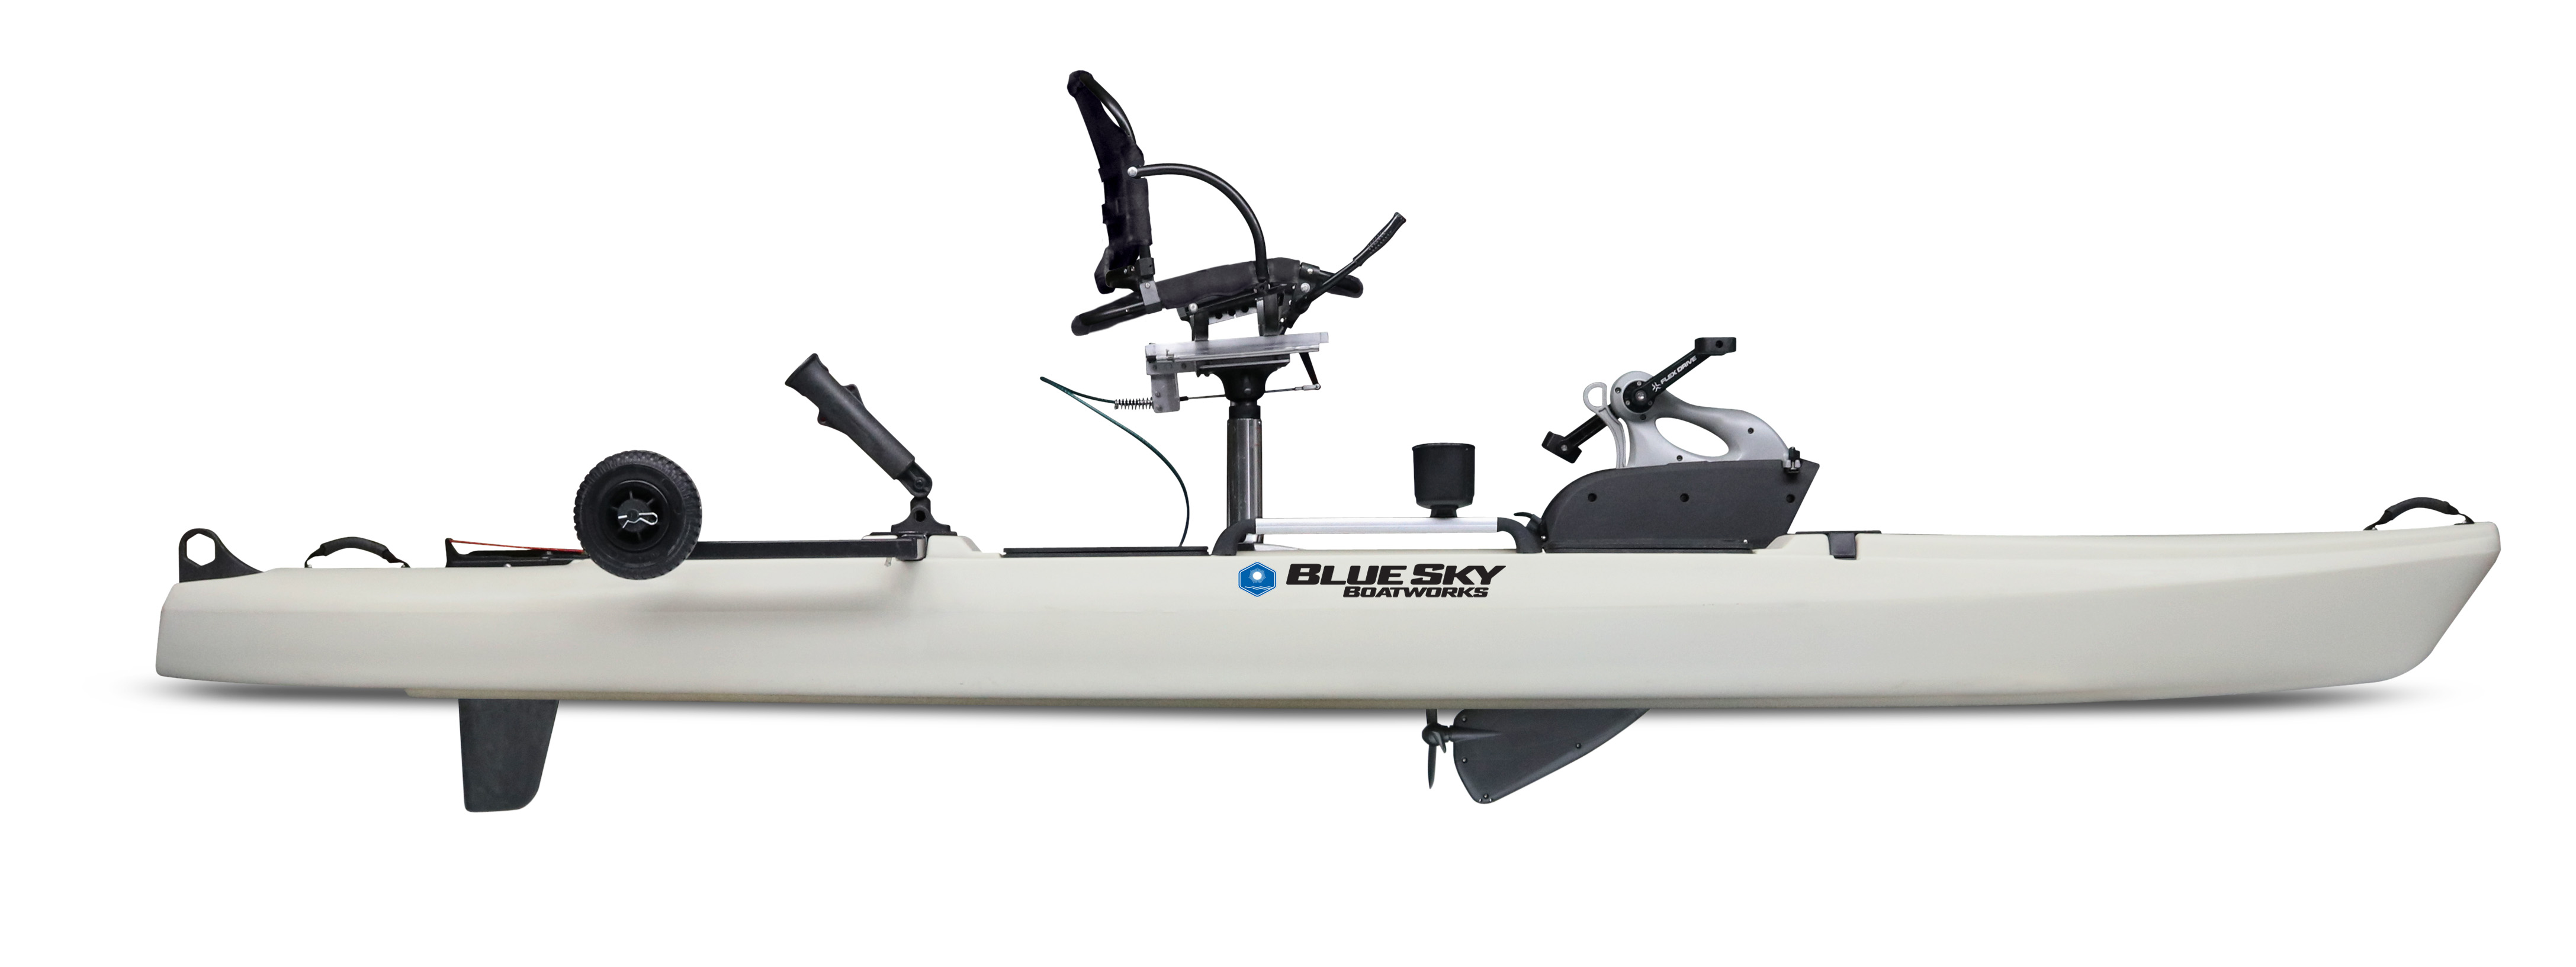 New brand from jackson kayak readies for launch with for Fishing kayak brands